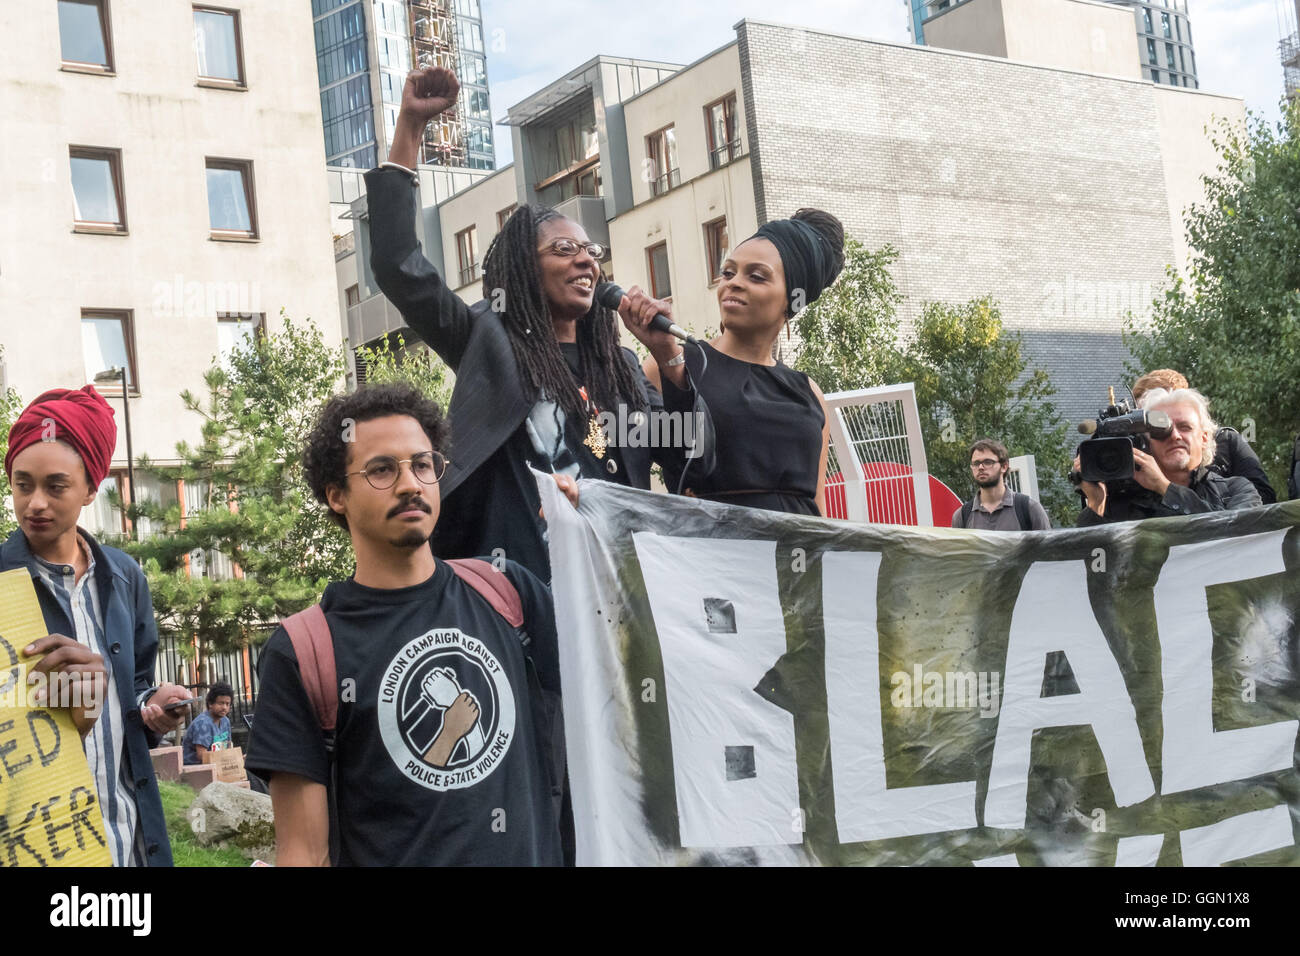 London, UK. 5th Aug, 2016. Marcia Rigg, whose brother Sean Rigg was killed by police in Brixton in 2008, raises - Stock Image